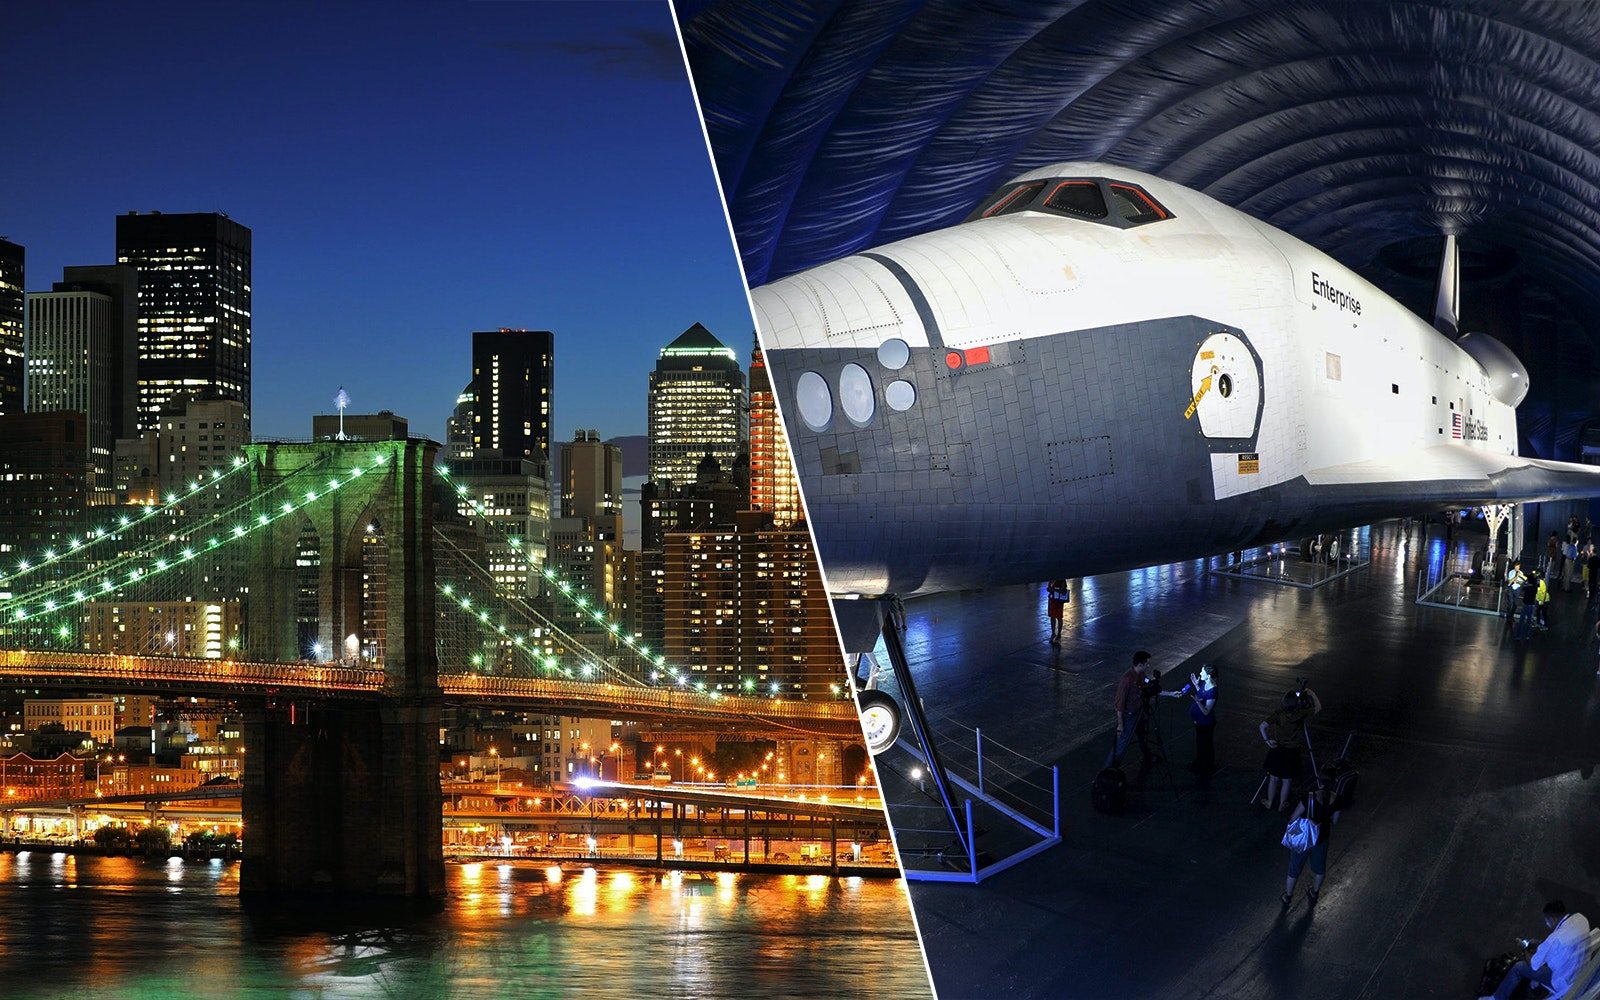 Harbor Lights Cruise And Intrepid Museum Skip The Line Tickets 1